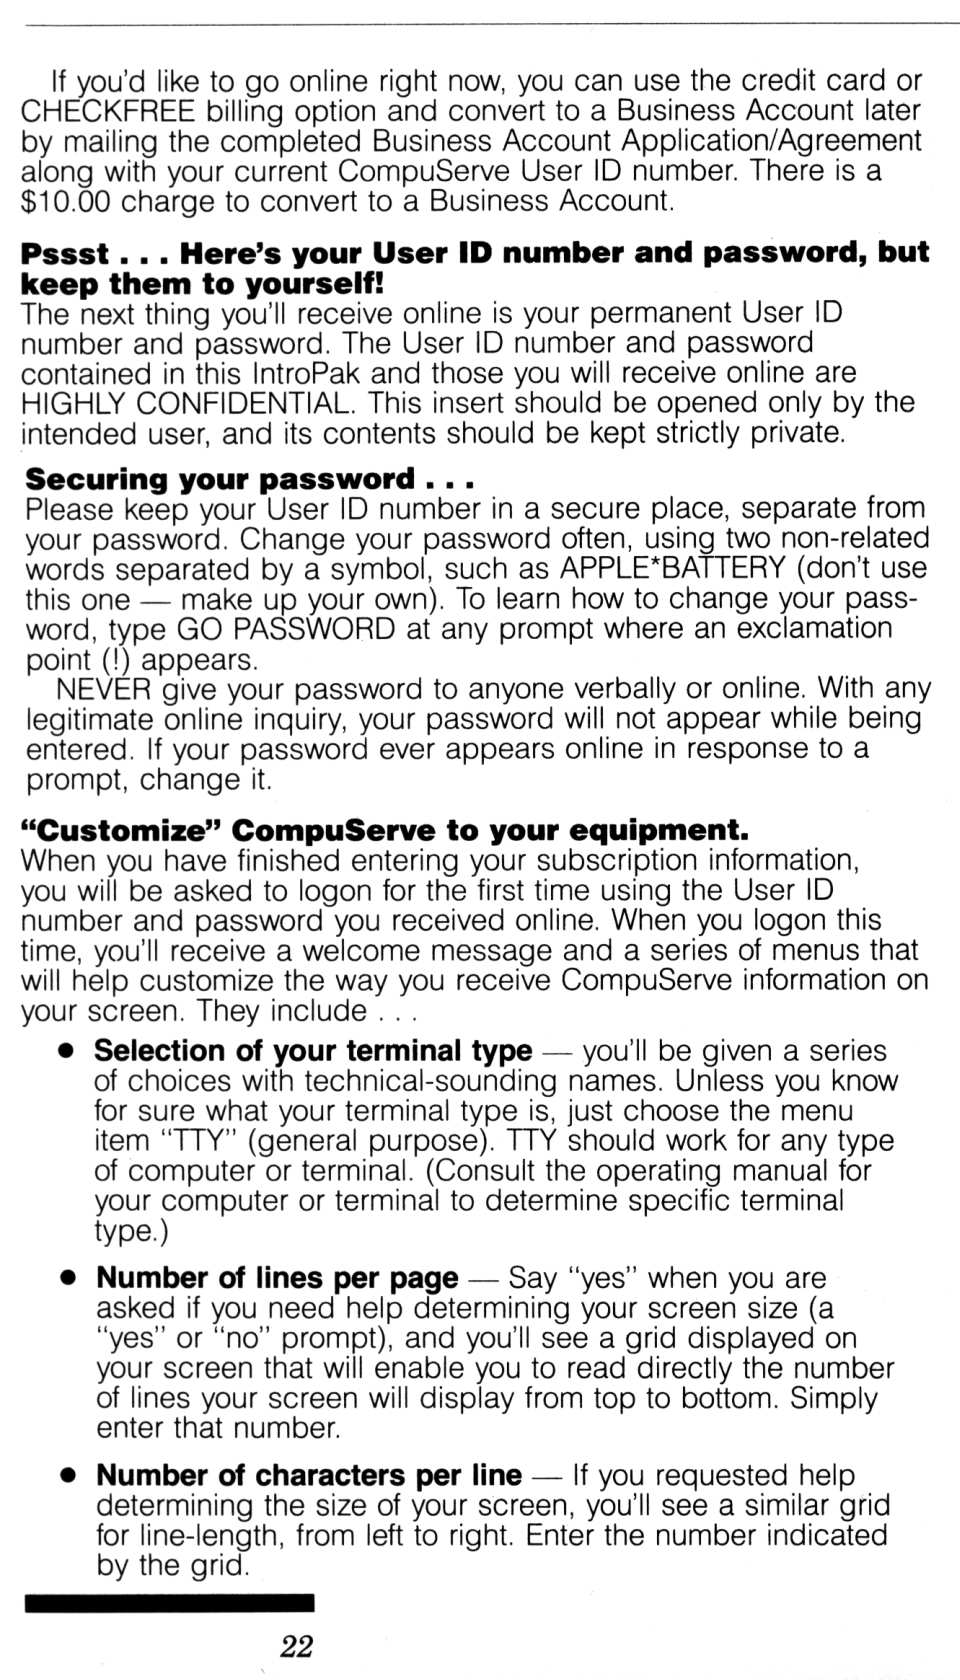 [CompuServe IntroPak page 22/44  Start Getting the Most from Your Computer Now, It's Easy! (5/6)]